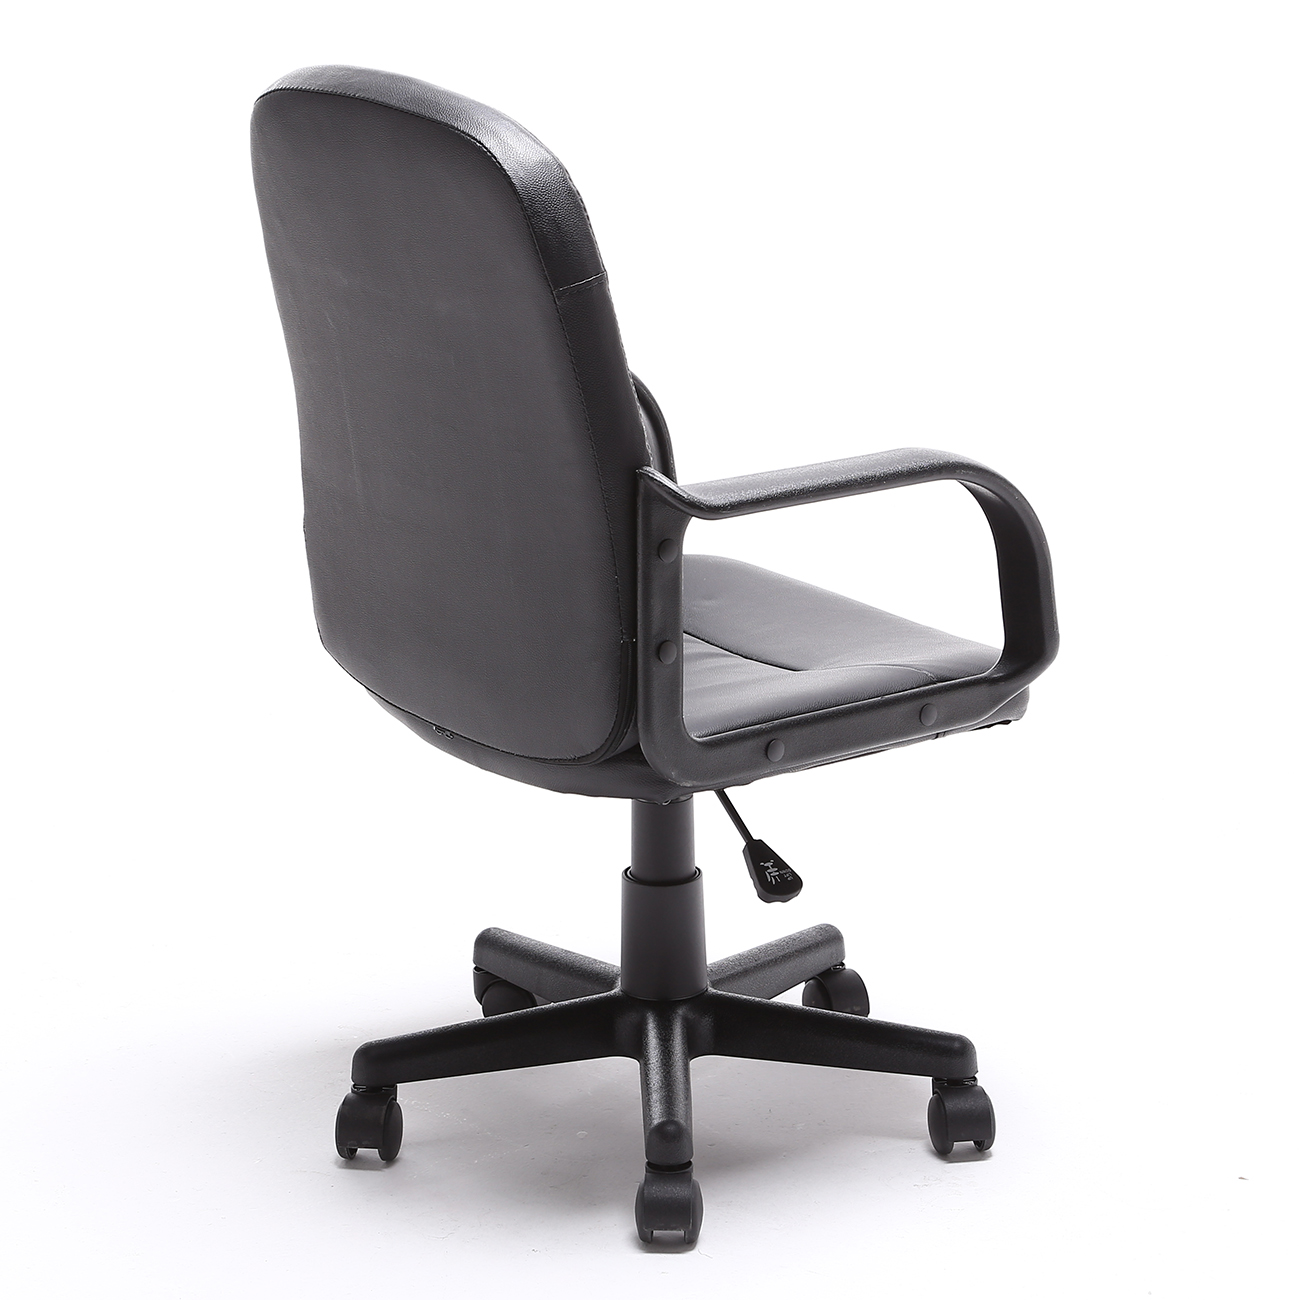 new modern office executive chair pu leather computer desk task hydraulic black ebay. Black Bedroom Furniture Sets. Home Design Ideas